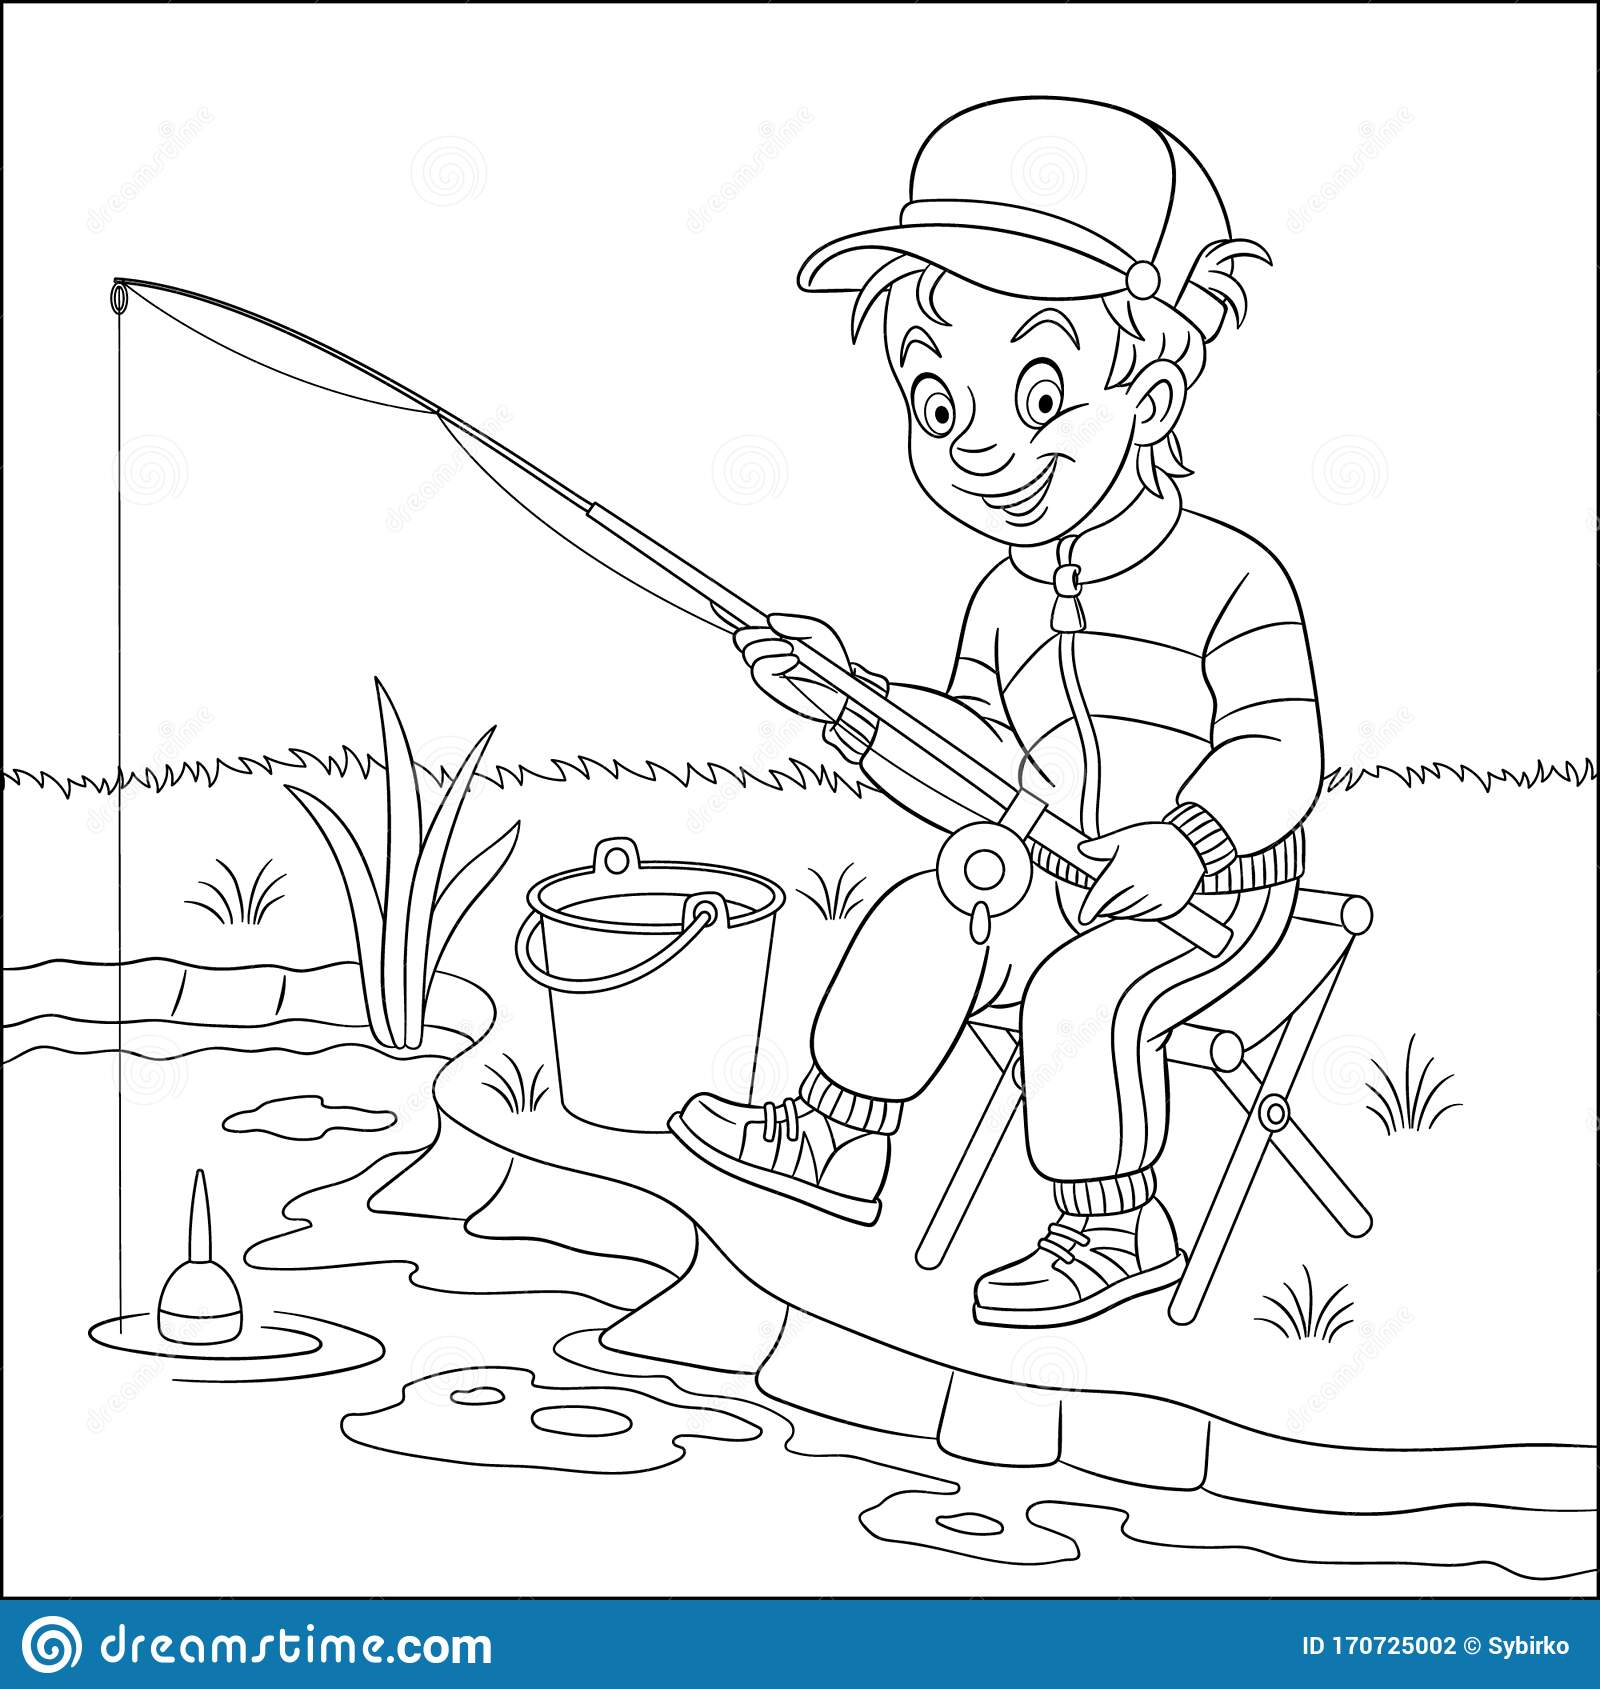 Coloring Page With Boy Fishing Stock Vector - Illustration ...